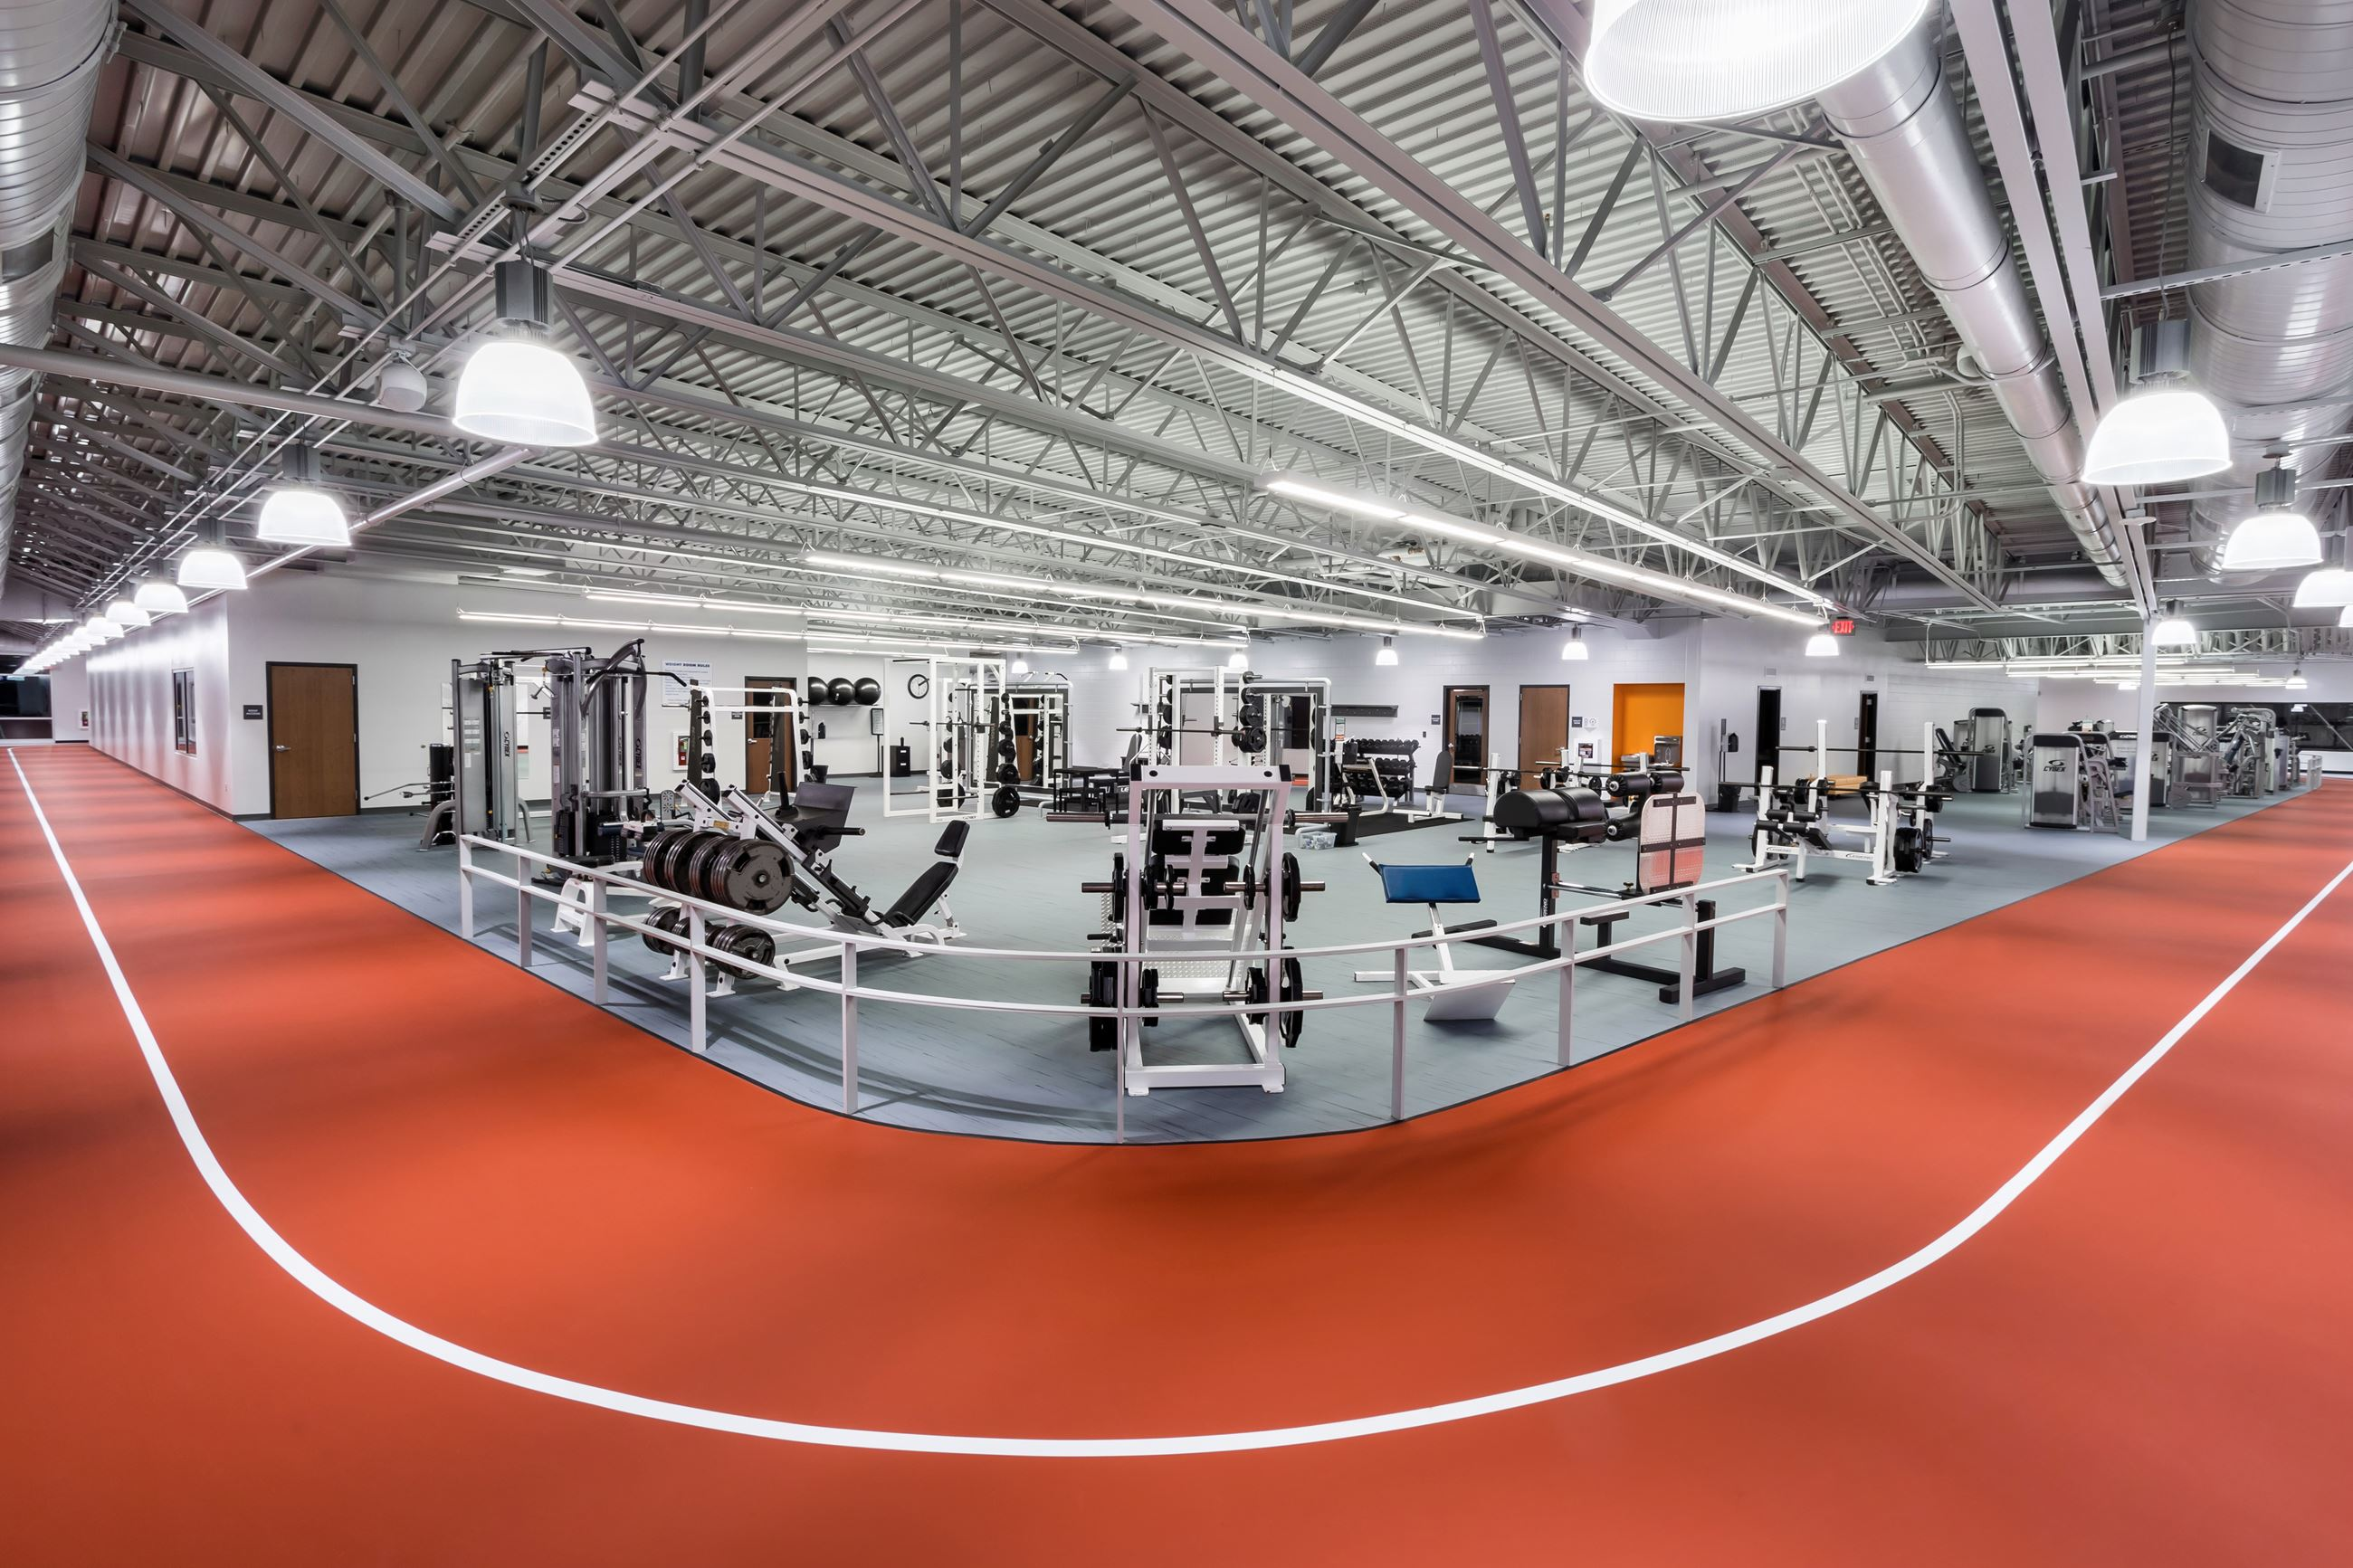 An indoor track alongside a workout area in a large indoor fitness facility